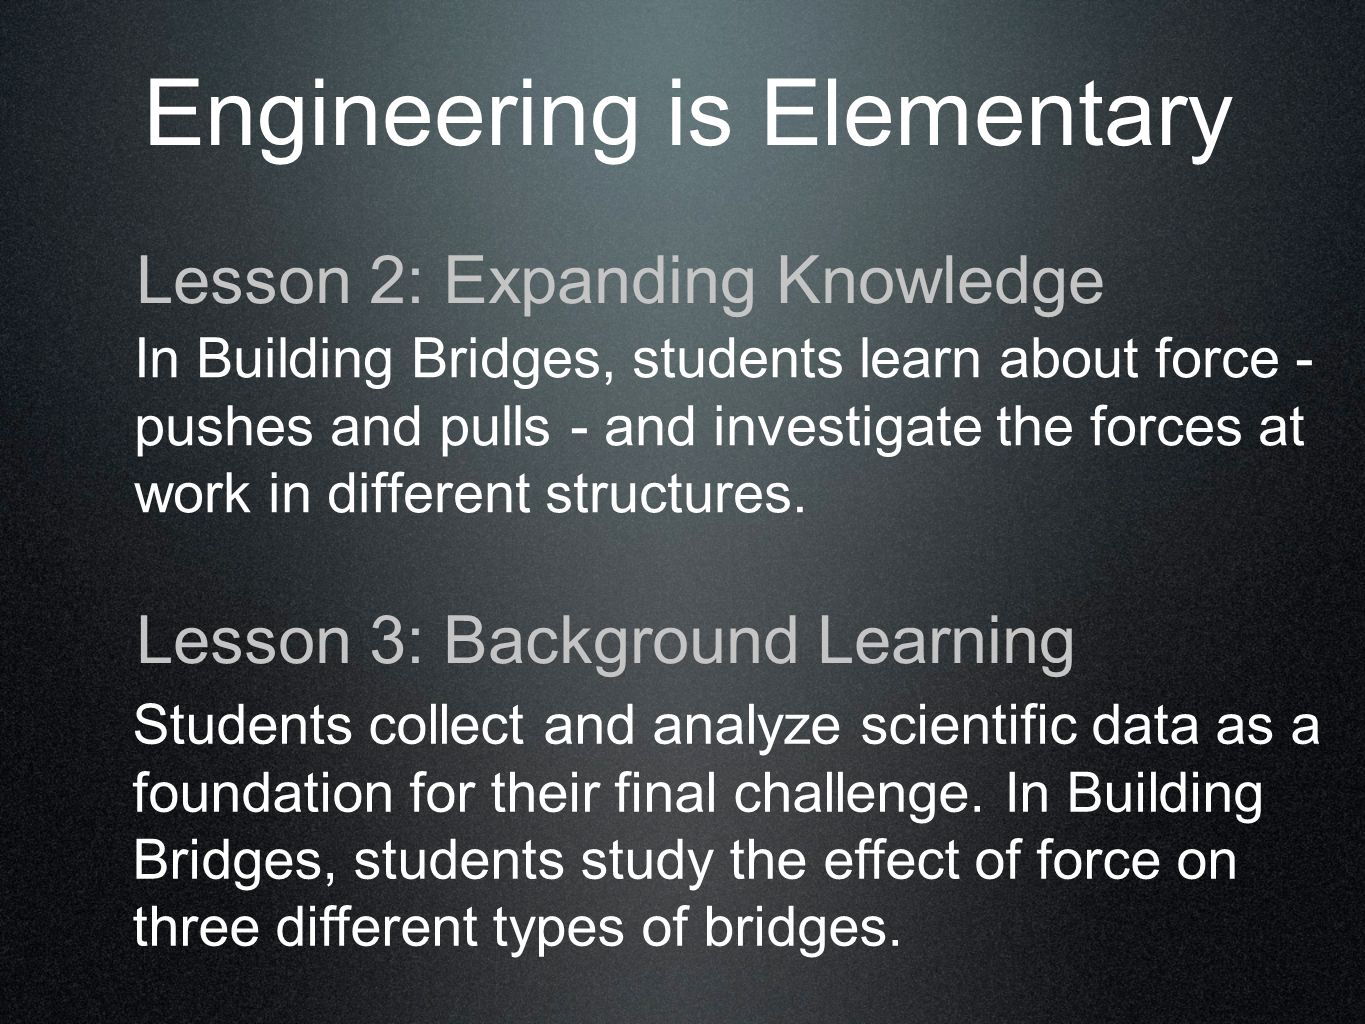 Engineering is Elementary In Building Bridges, students learn about force - pushes and pulls - and investigate the forces at work in different structures.